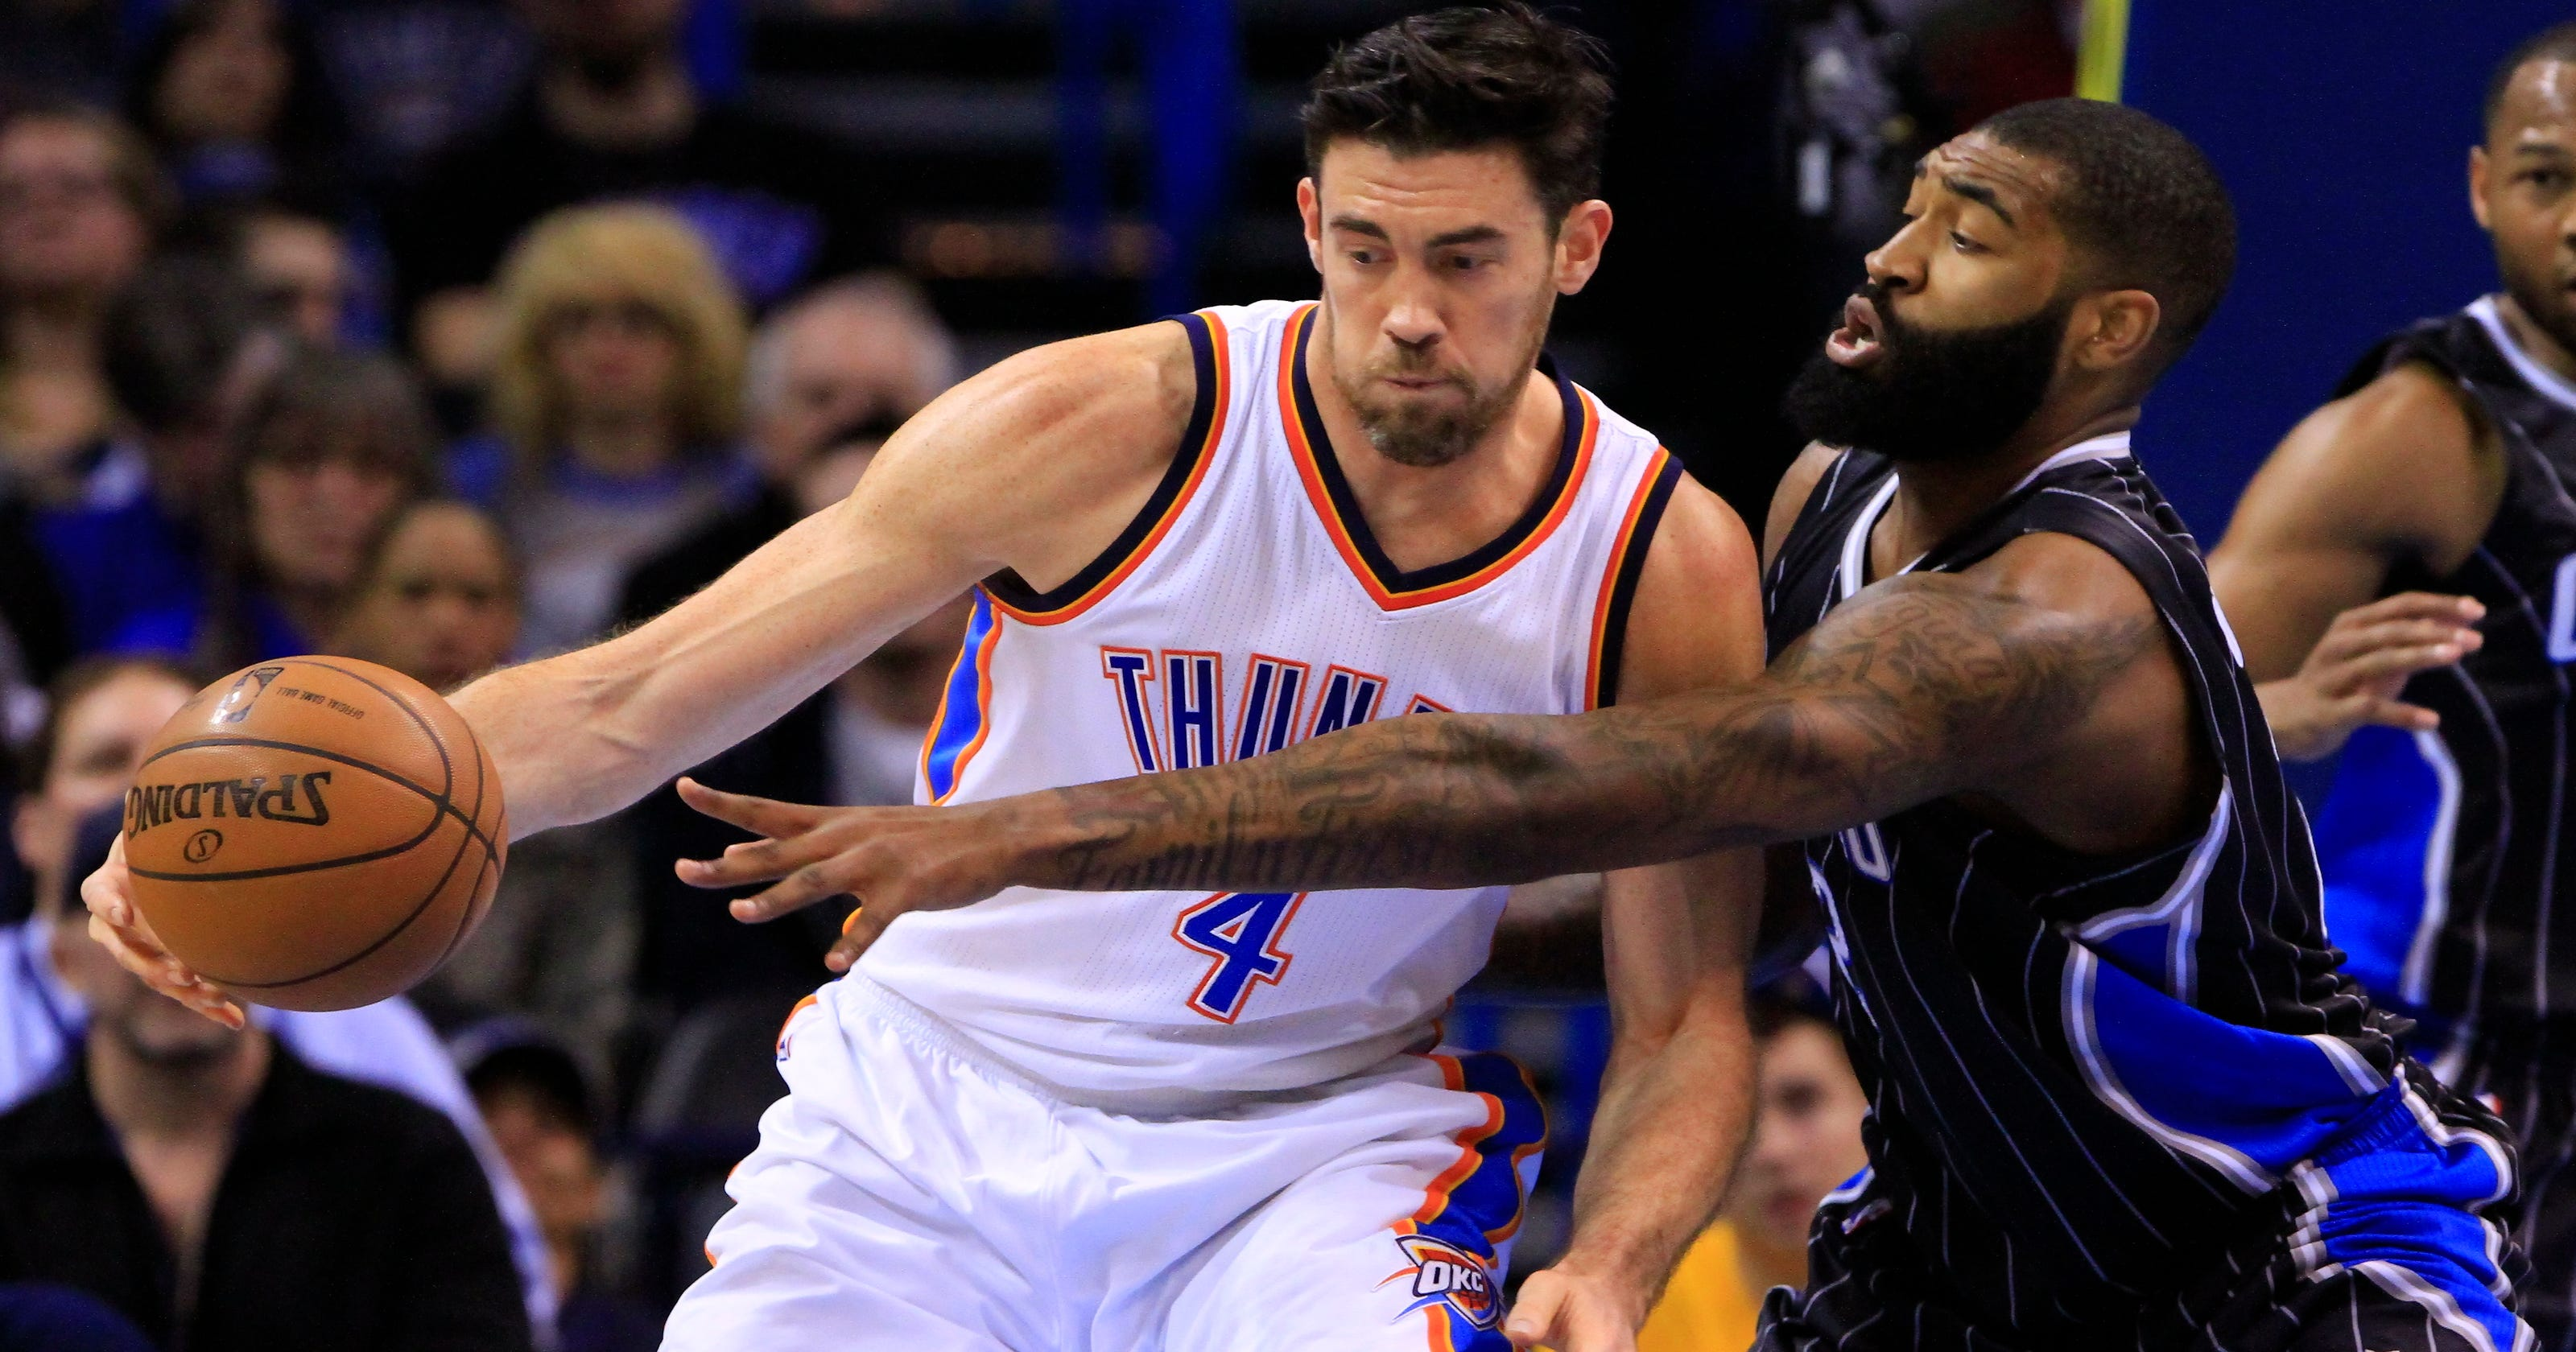 2422a2bf6da Nick Collison of Oklahoma City Thunder retires from NBA